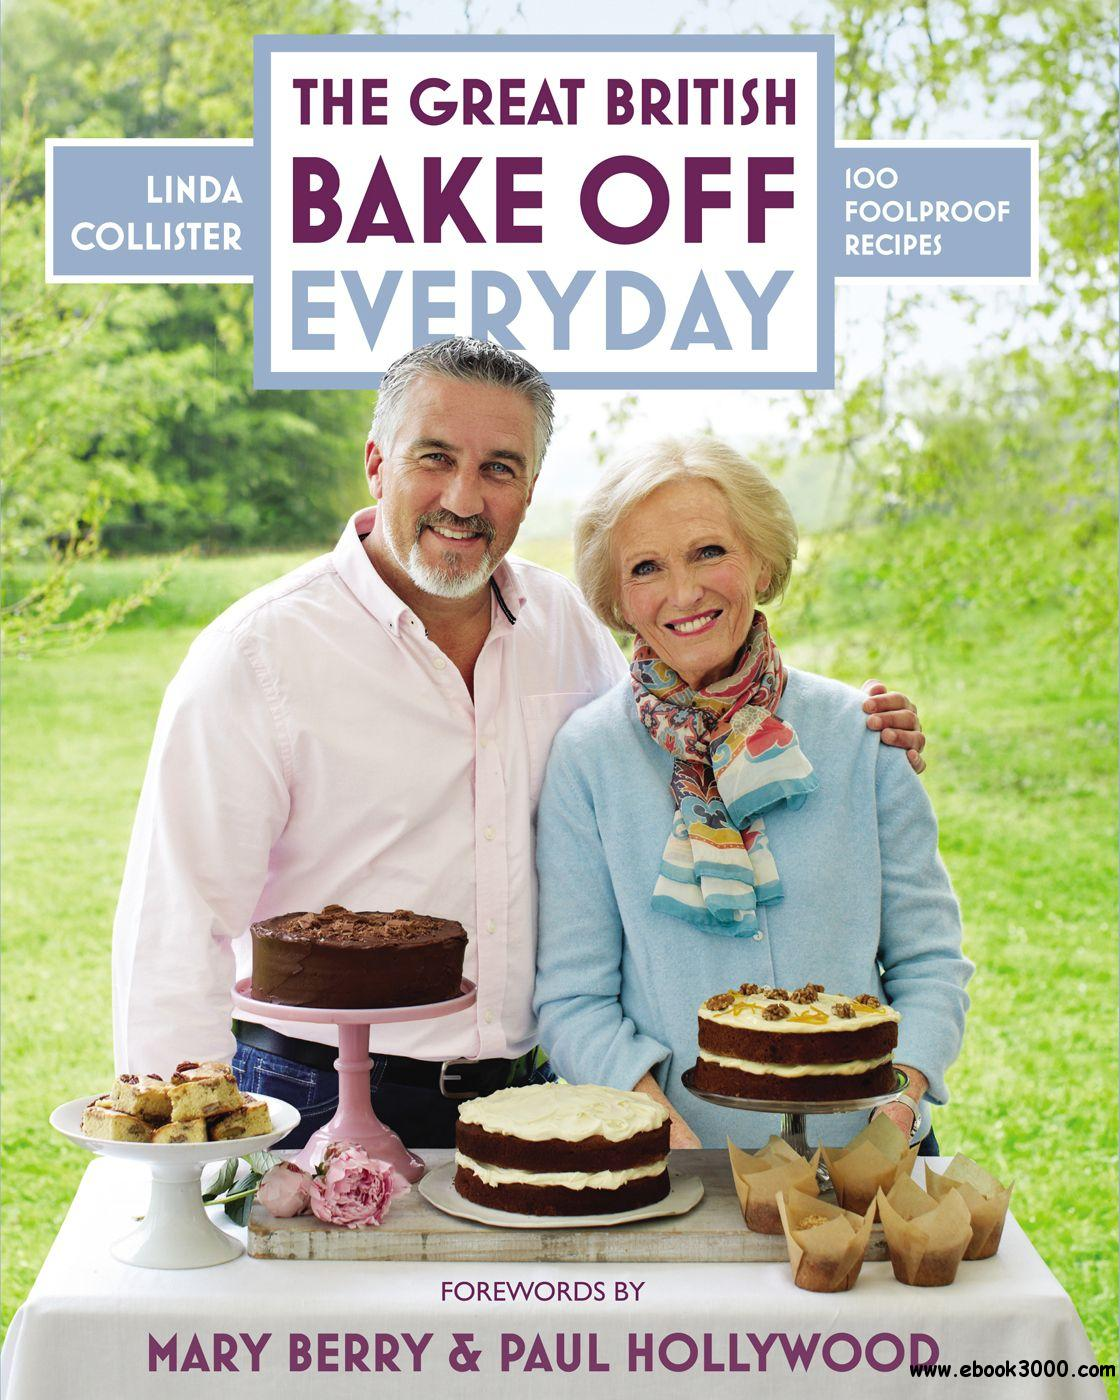 Great British Bake Off Everyday: Over 100 Foolproof Bakes